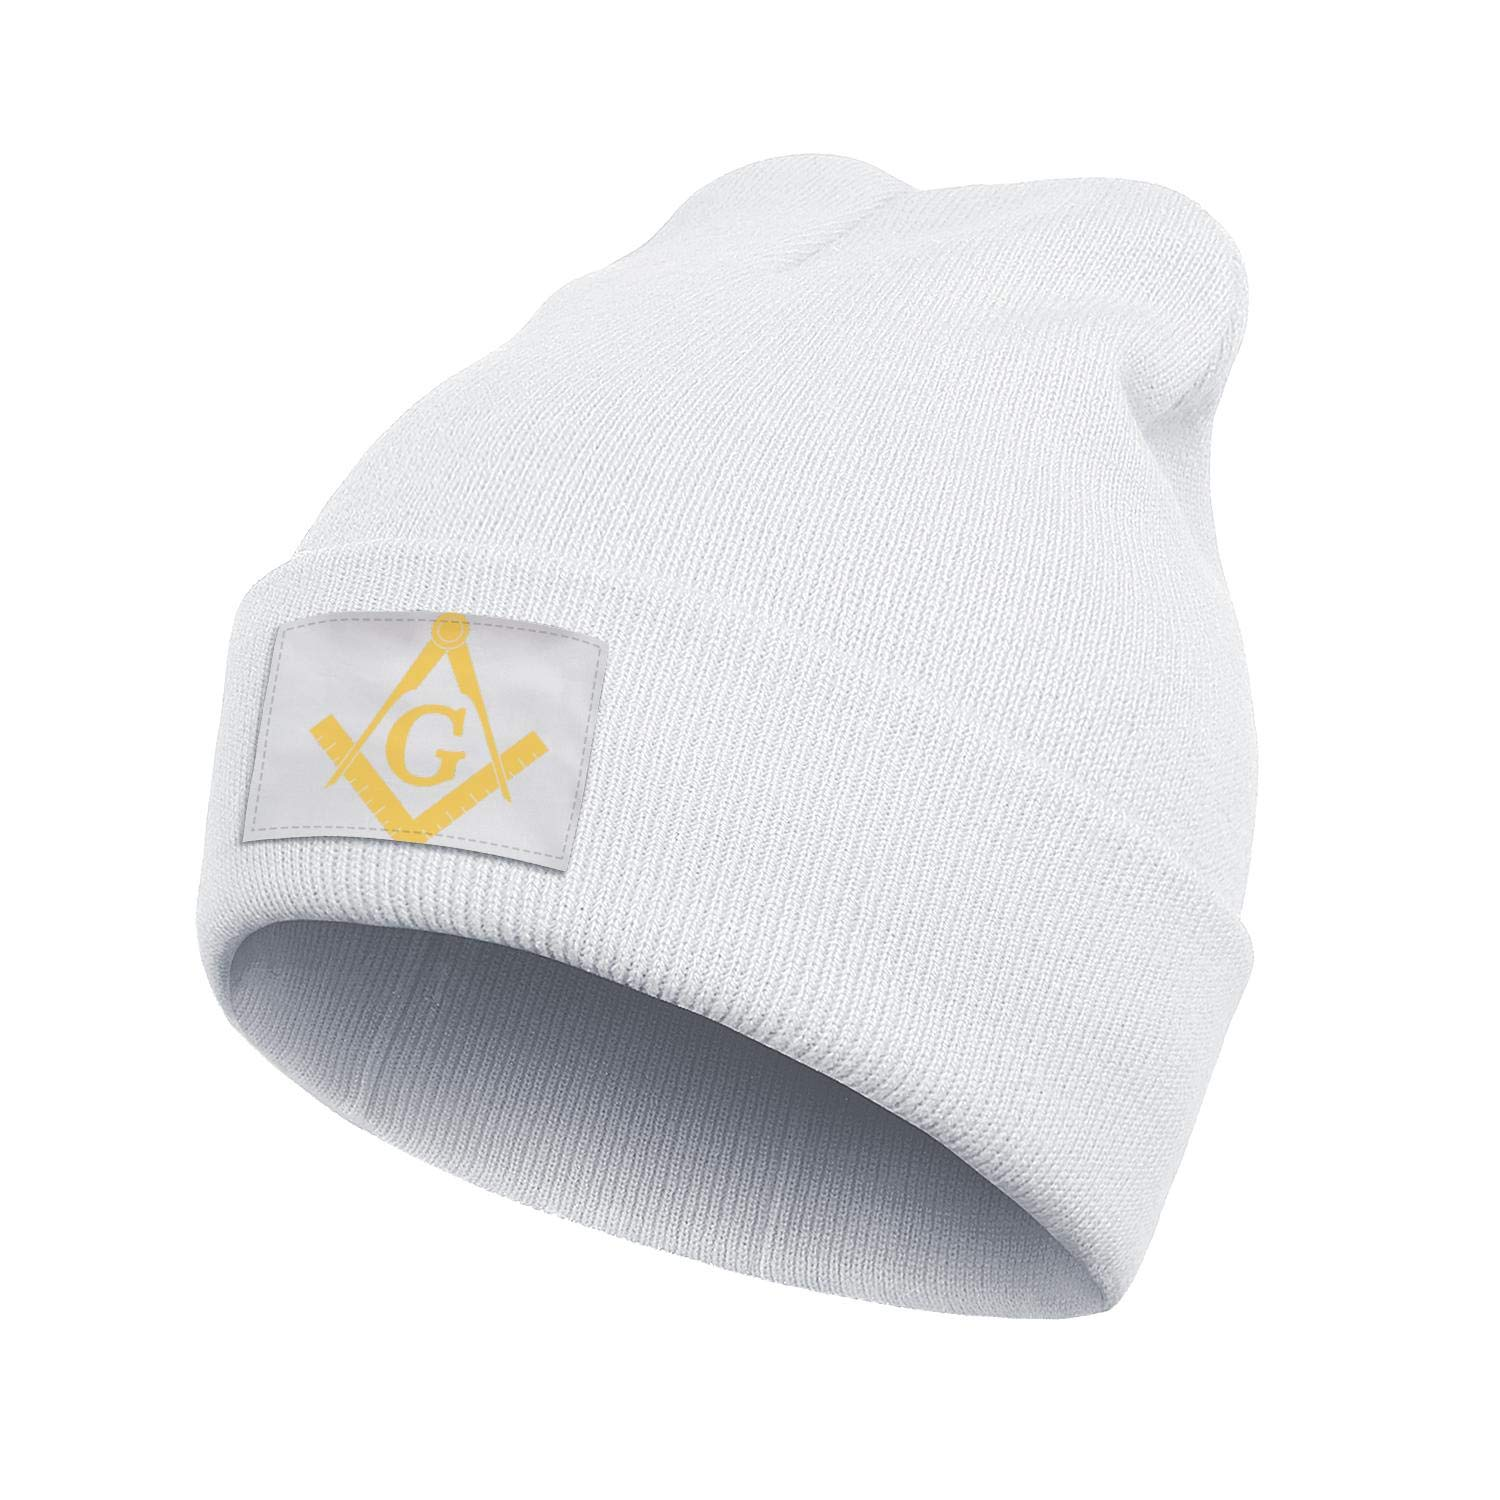 Peace Symbol Icon Love Peace Sign Hope Knitted Beanie Knit Ladies Hat Beanie Caps for Boys Youth Skull Cap 3D Printed Adult Comfortbale Soft